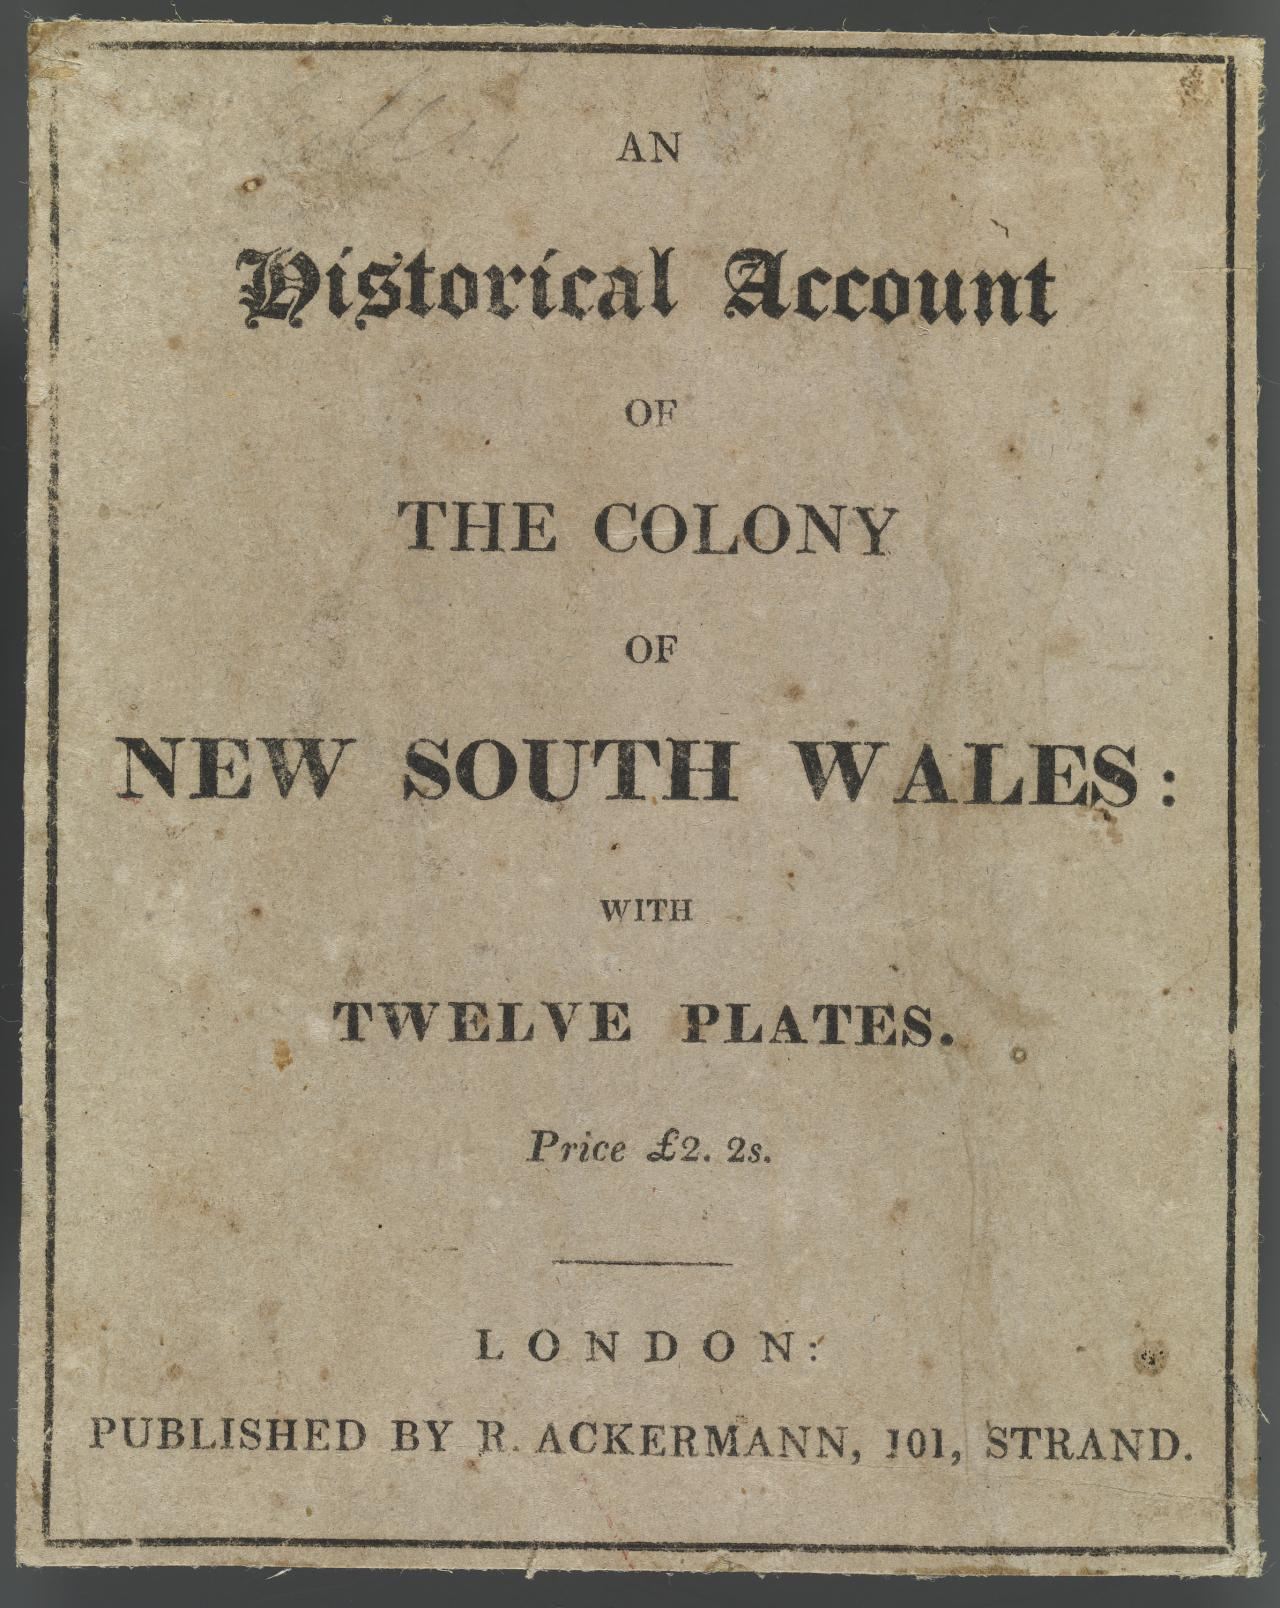 An Historical Account of the Colony of New South Wales